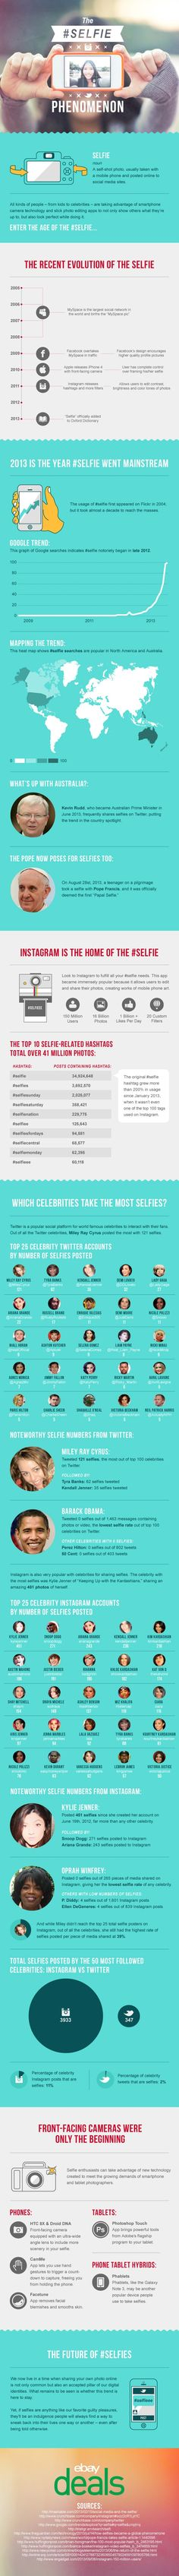 The Rise of the #Selfie